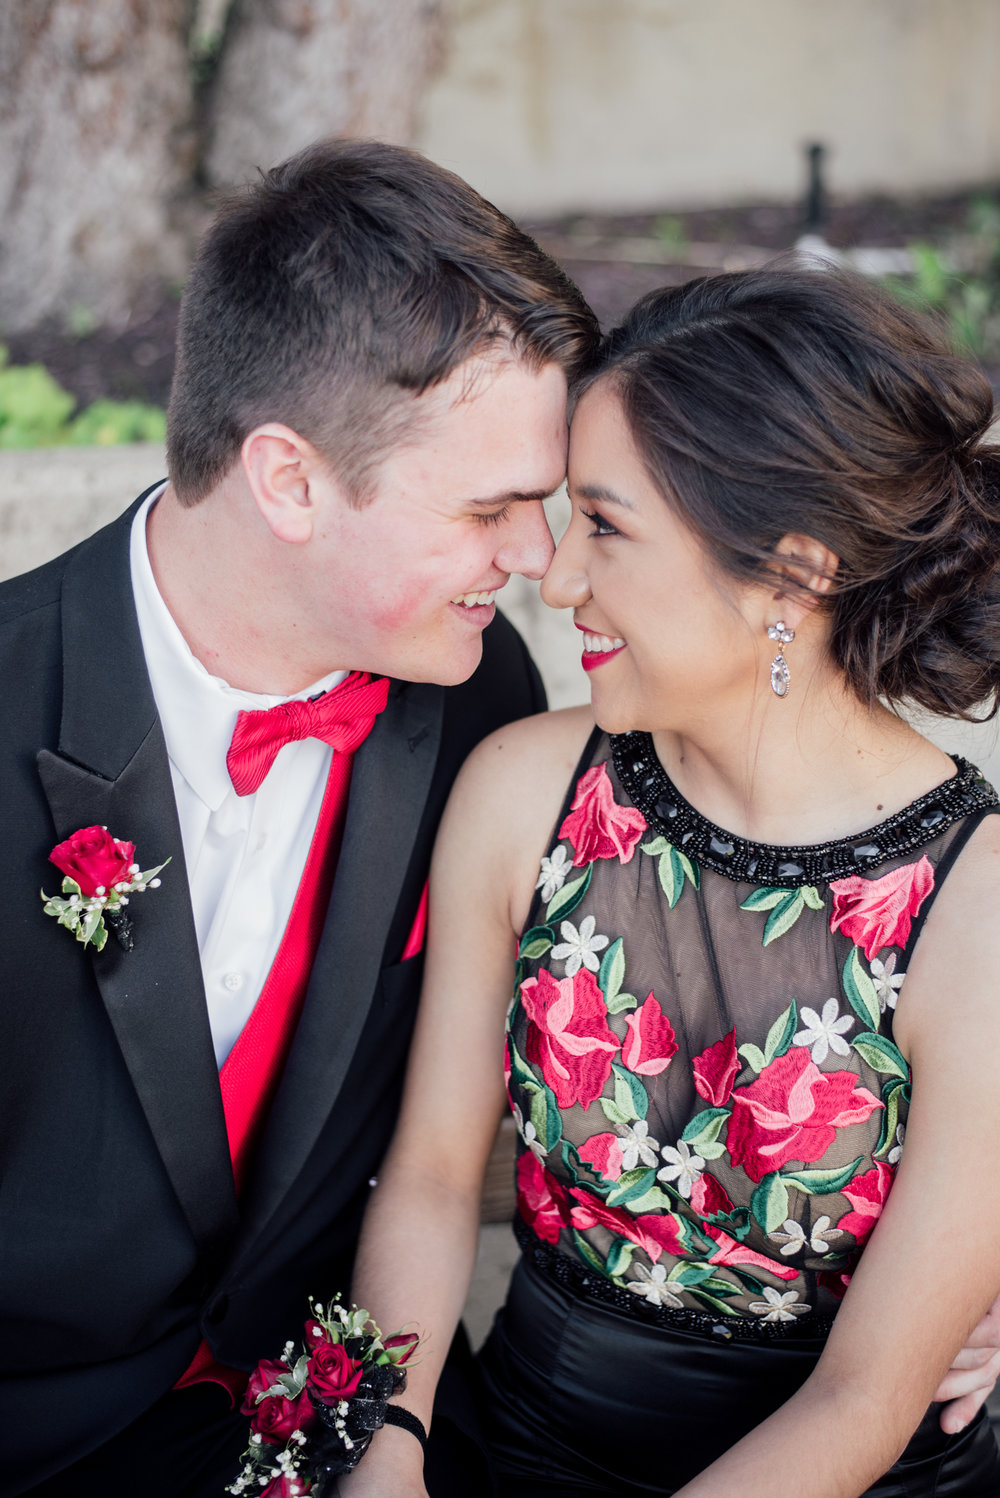 evelyn and quinn muscatine prom pictures-13.jpg